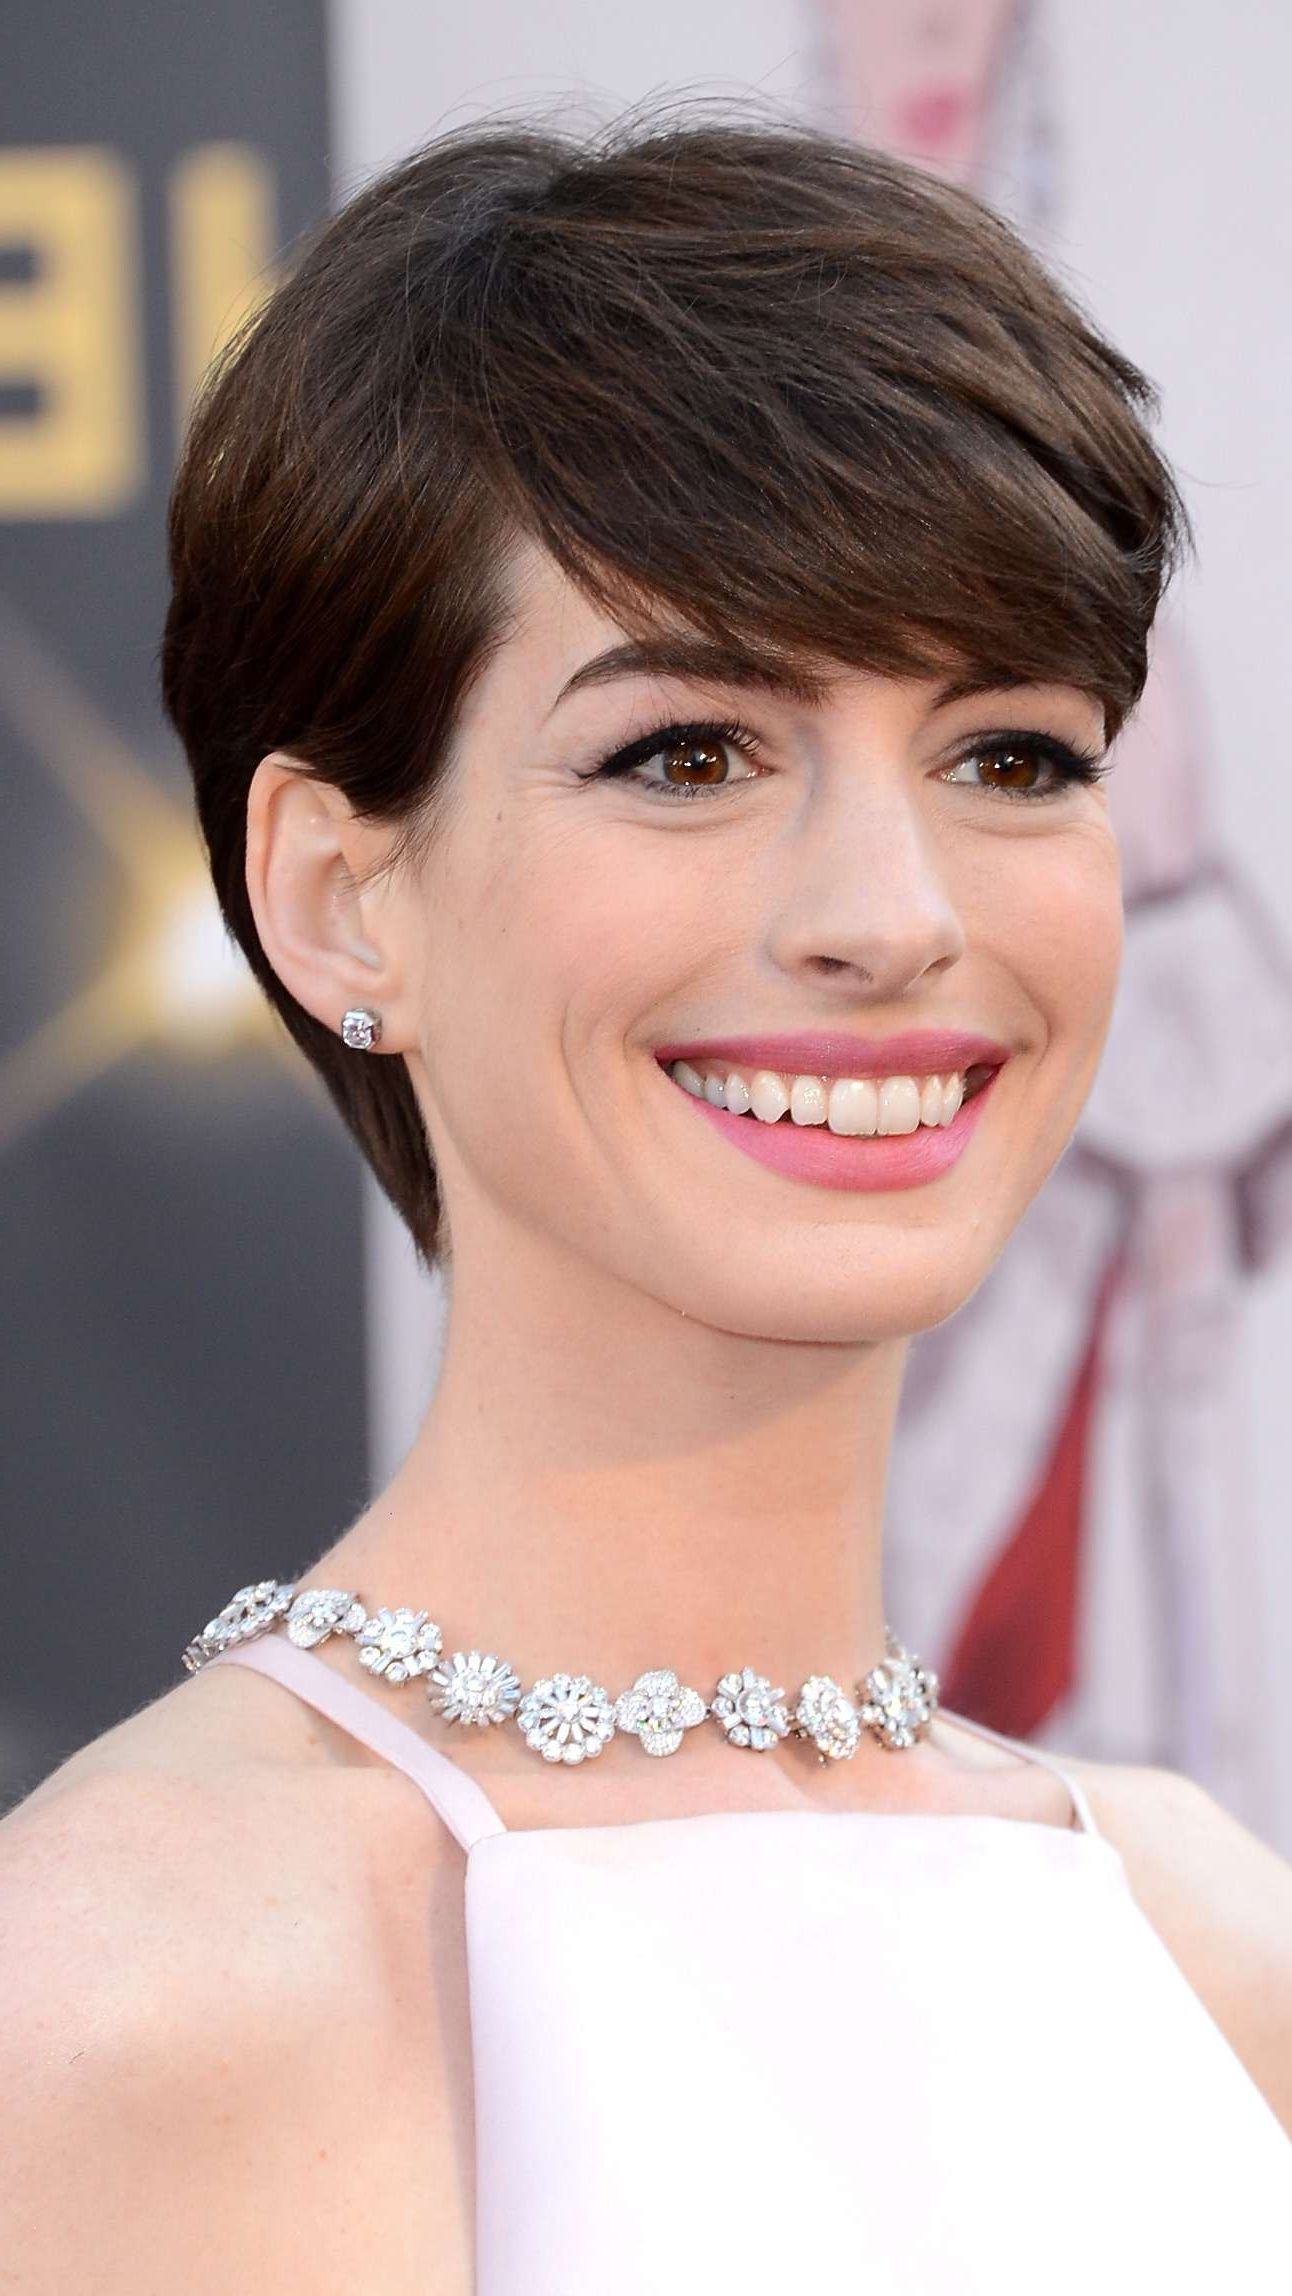 22 Inspiring Short Haircuts For Every Face Shape For Short Haircuts For Women With Oval Faces (View 15 of 25)